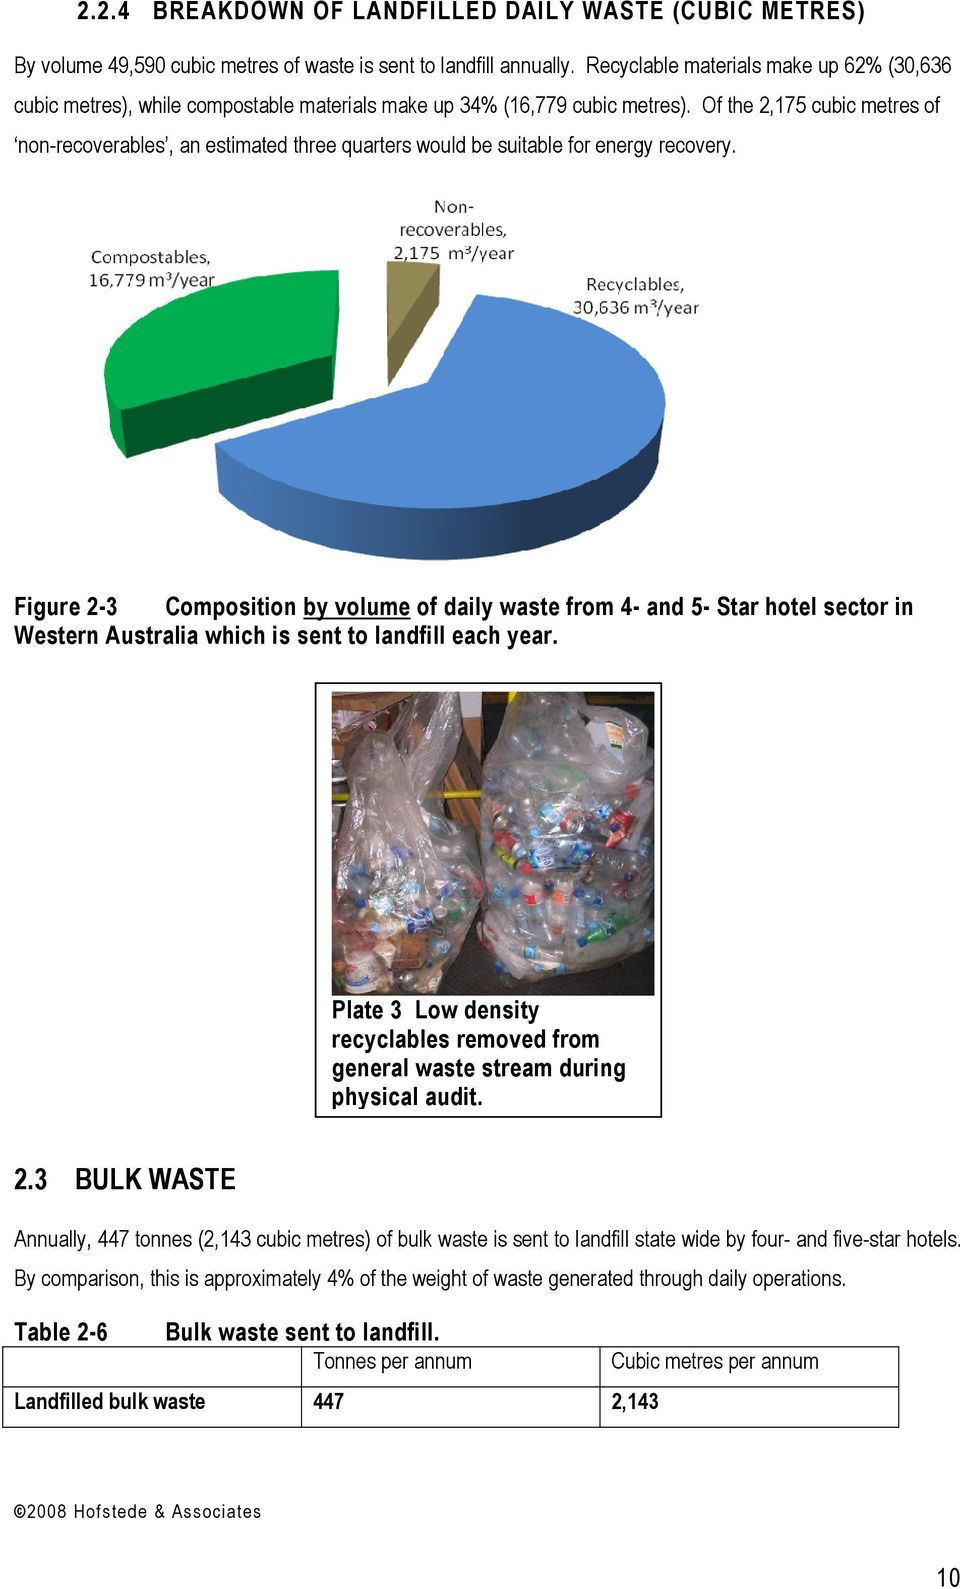 Waste Generation In The Wa Hospitality Industry Pdf Western Saddle Diagram Of 2175 Cubic Metres Non Recoverables An Estimated Three Quarters Would Be